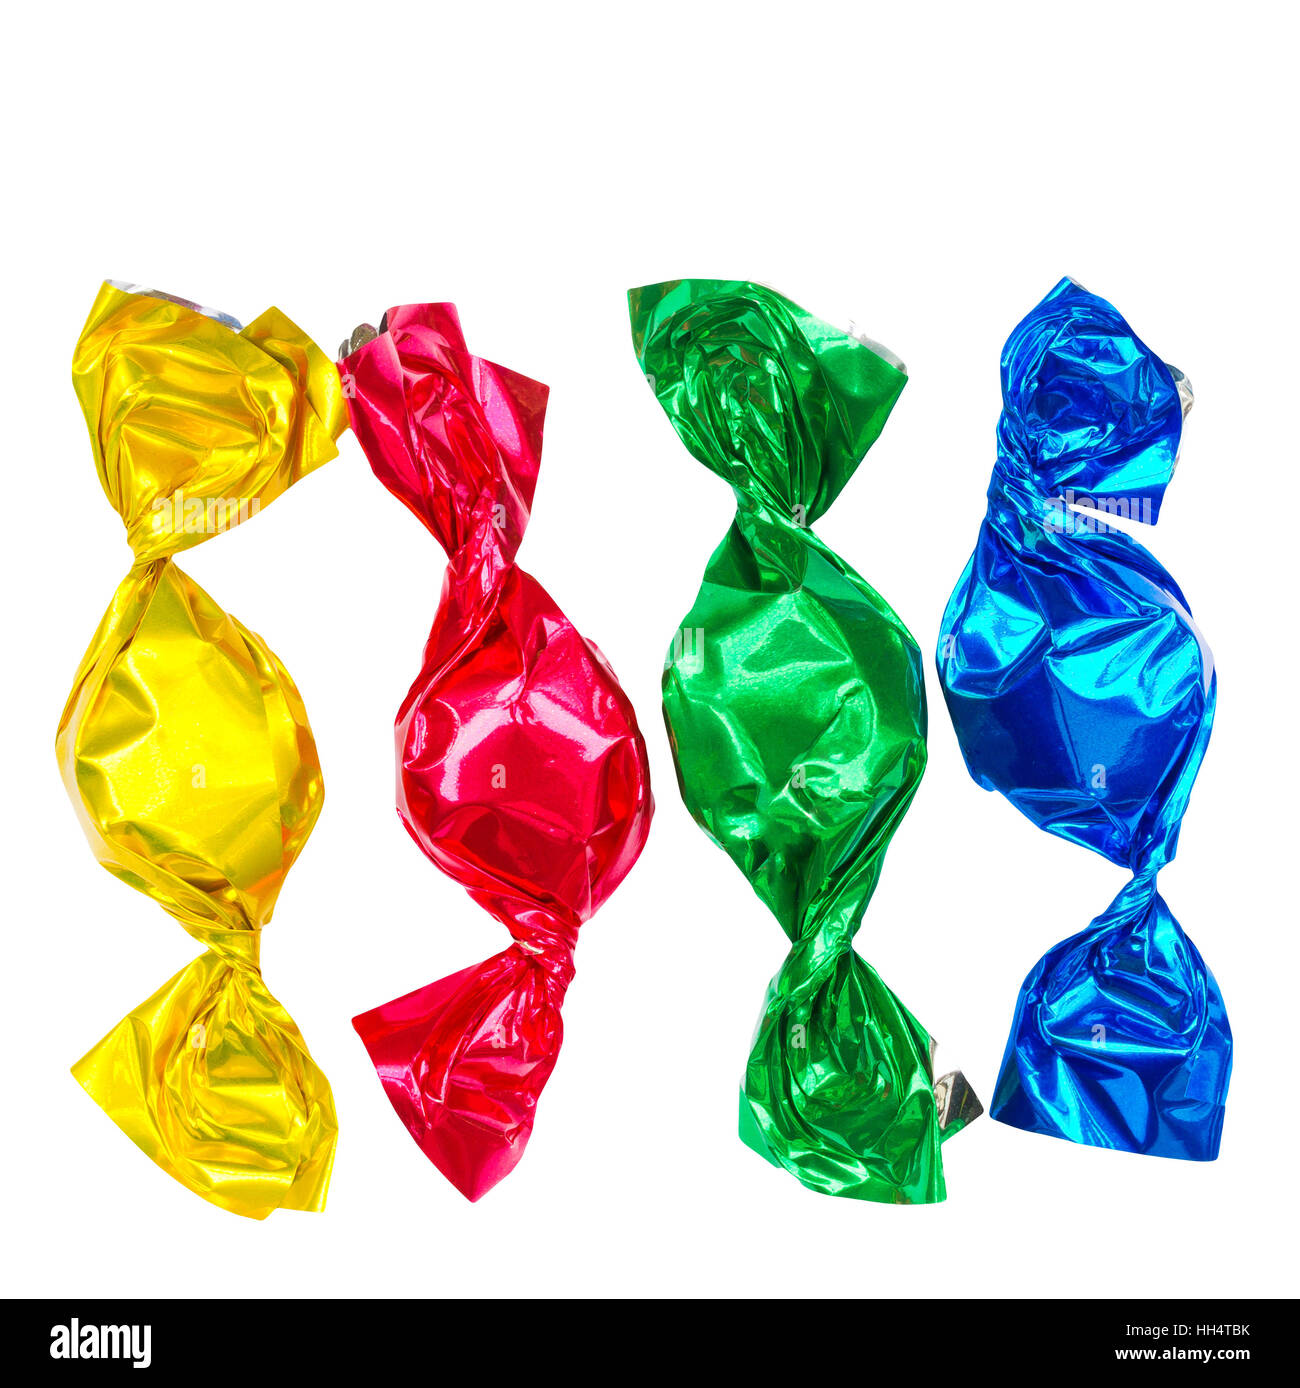 Colorful bonbons - Stock Image